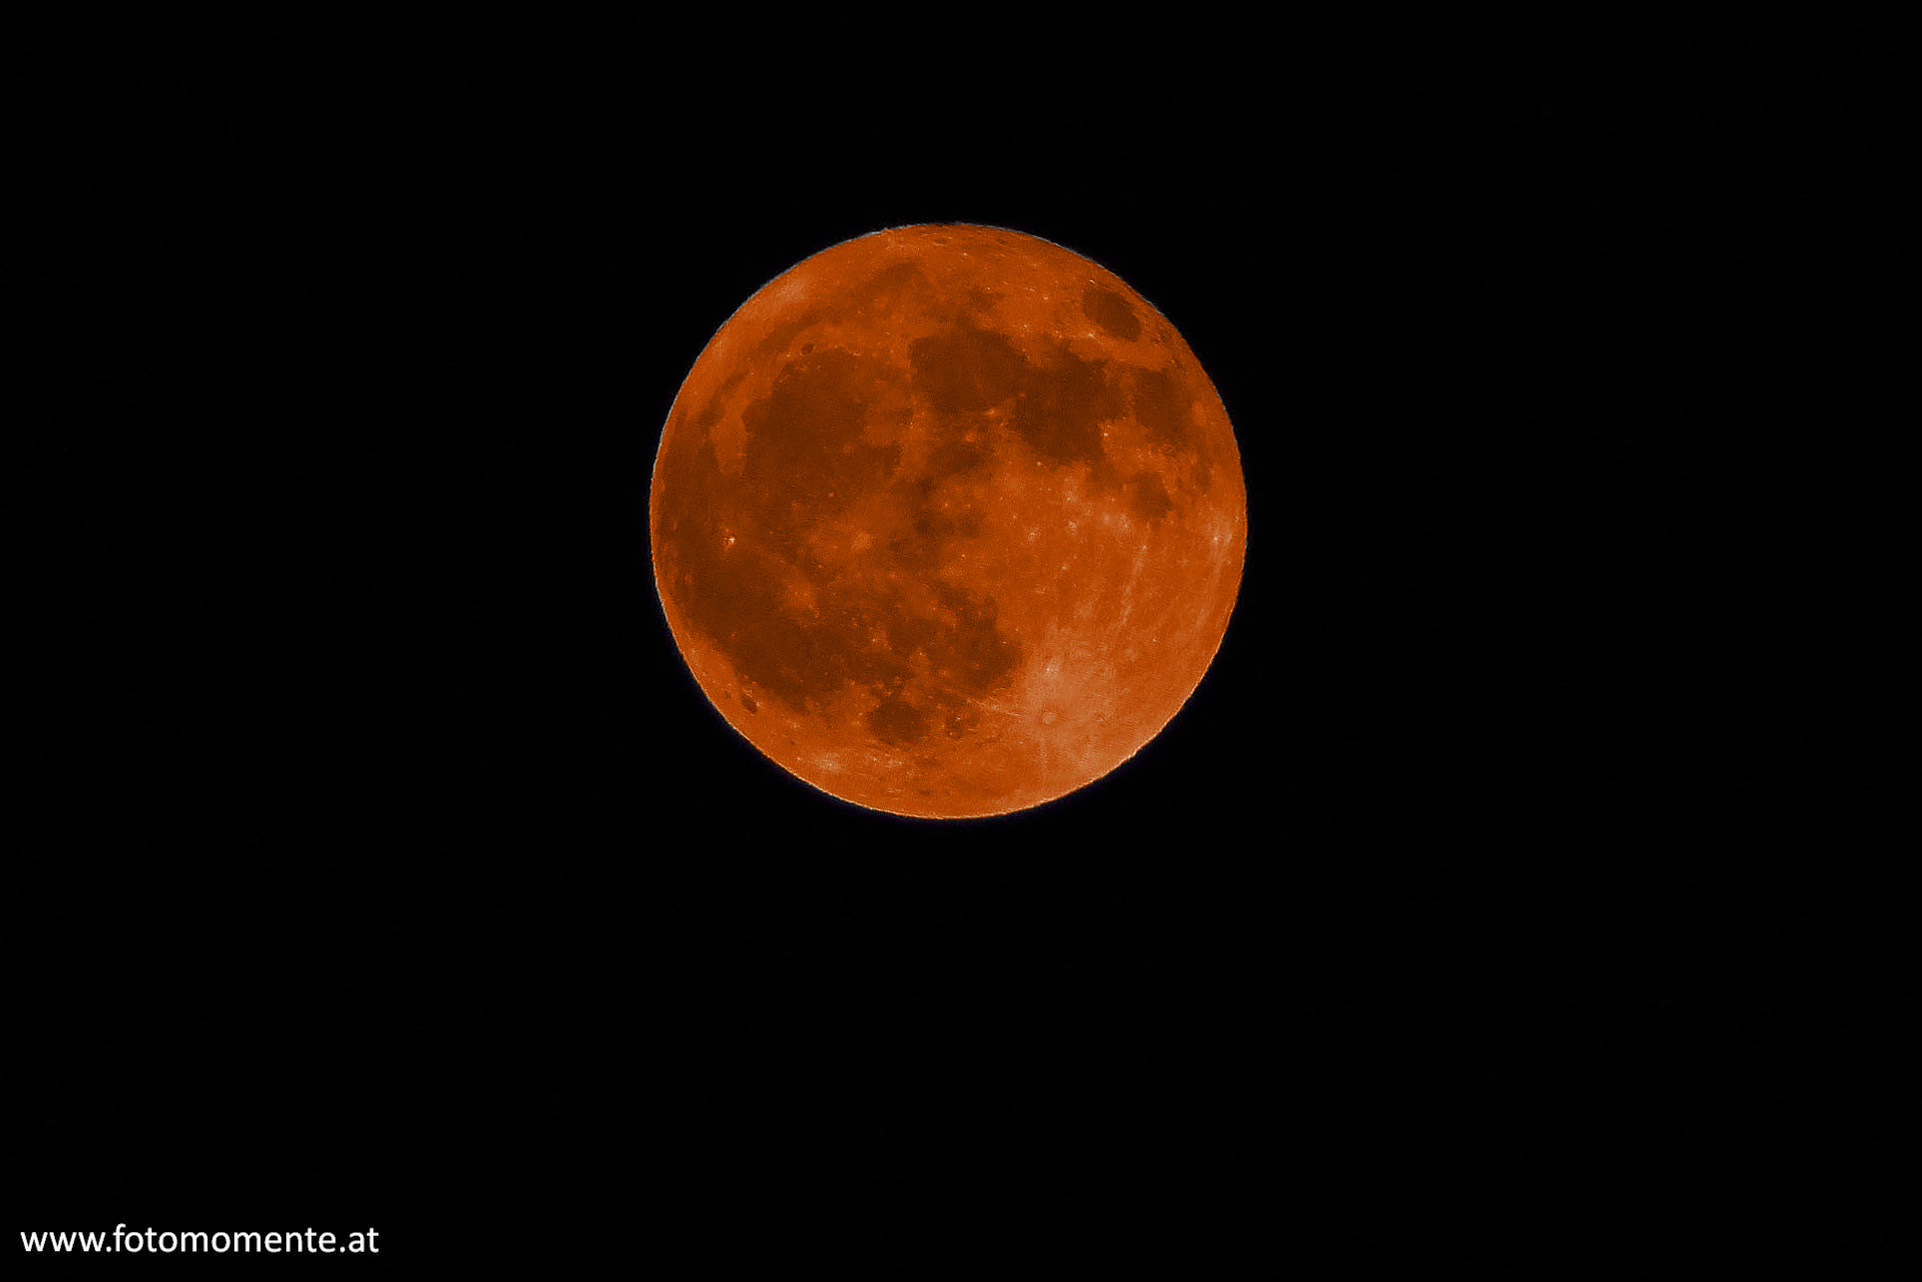 vollmond mondfinsternis orange - Oranger Vollmond - Blutmond - in einer Kernschattenfinsternis